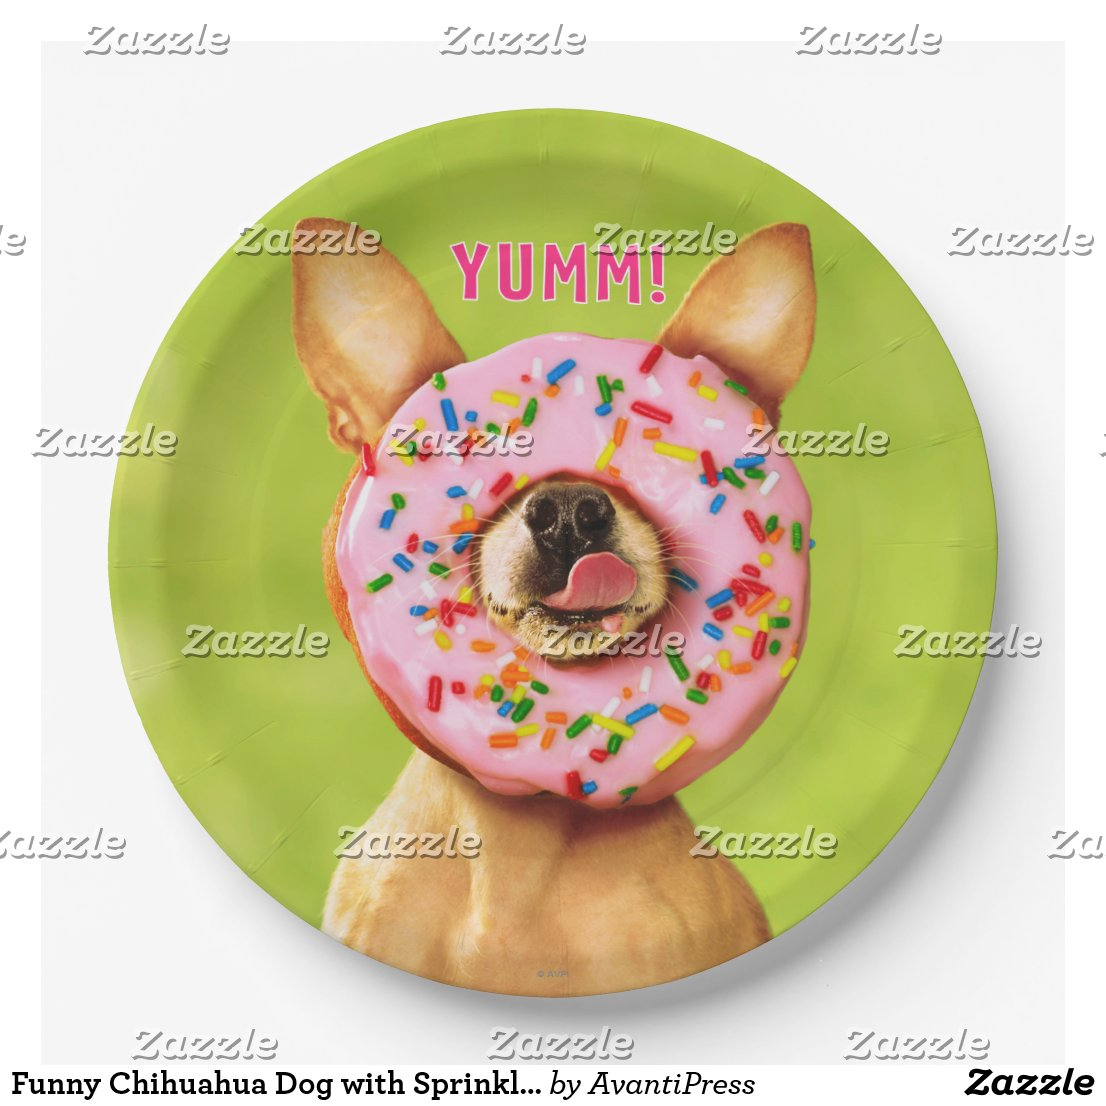 Funny Chihuahua Dog with Sprinkle Donut on Nose